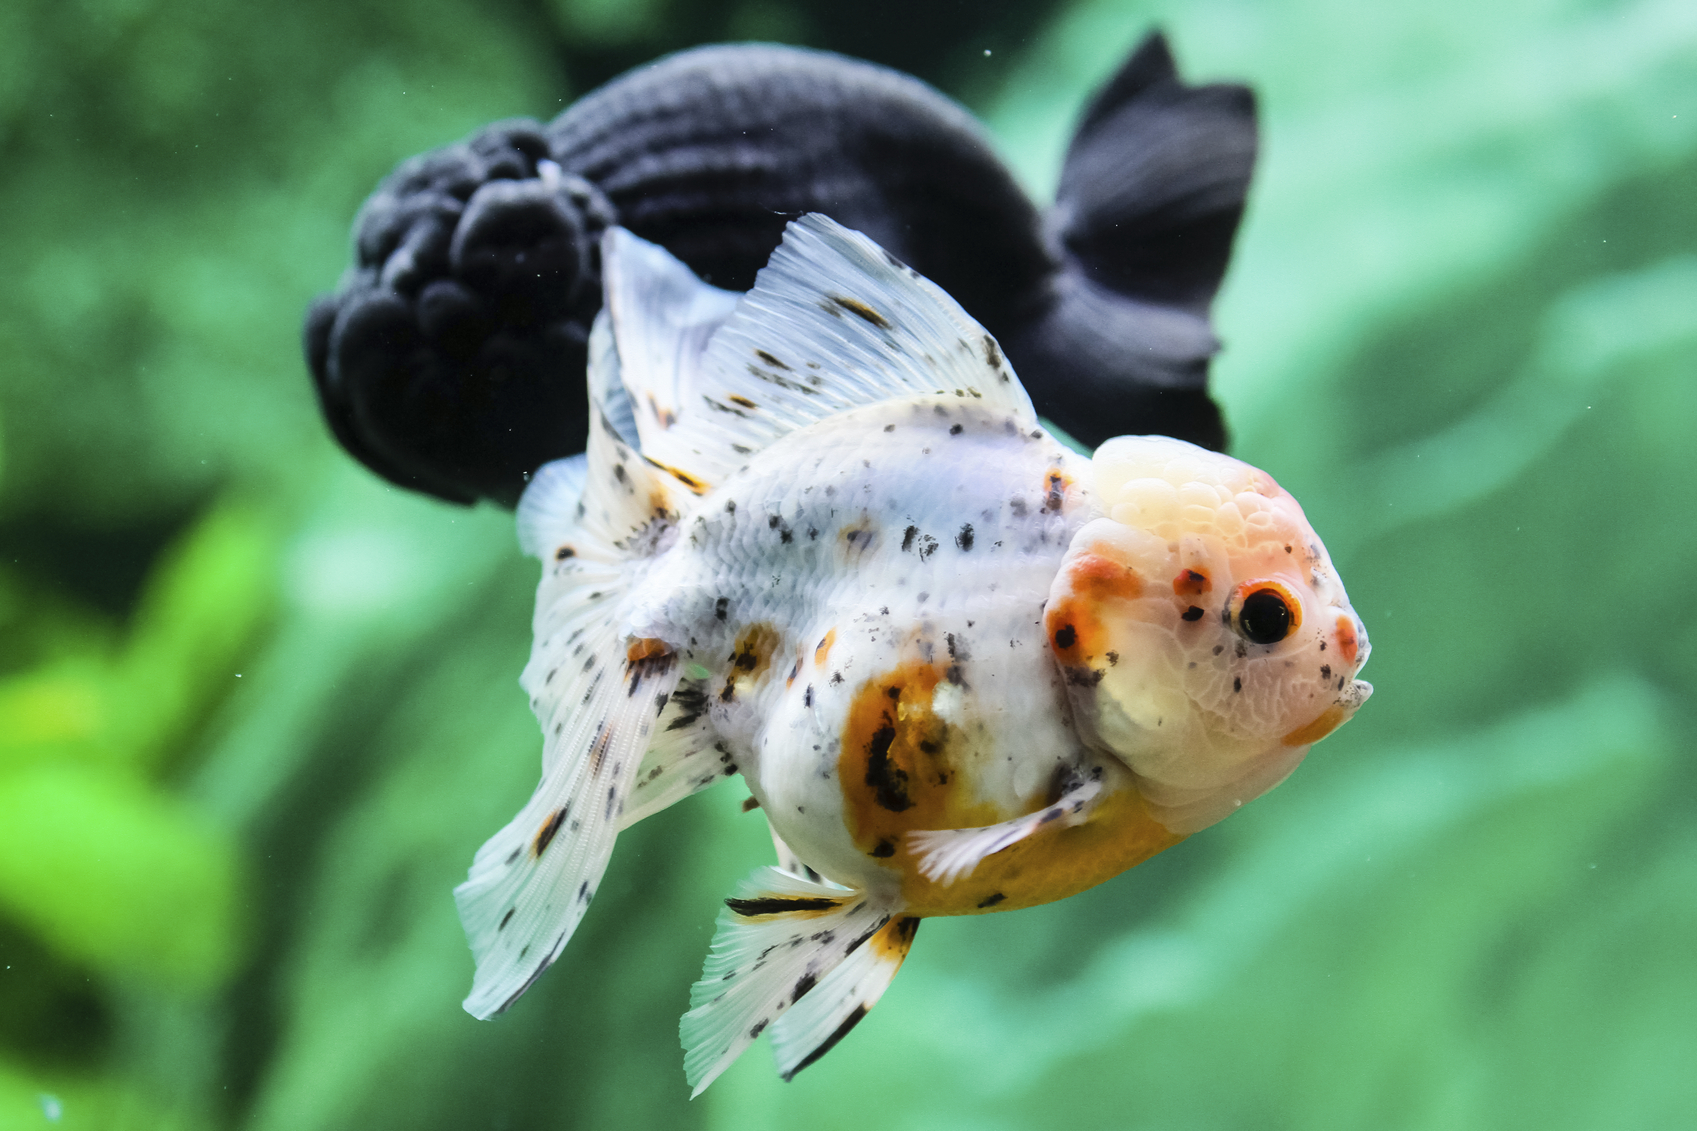 hight resolution of feng shui advice for the lucky number of fish in a tank